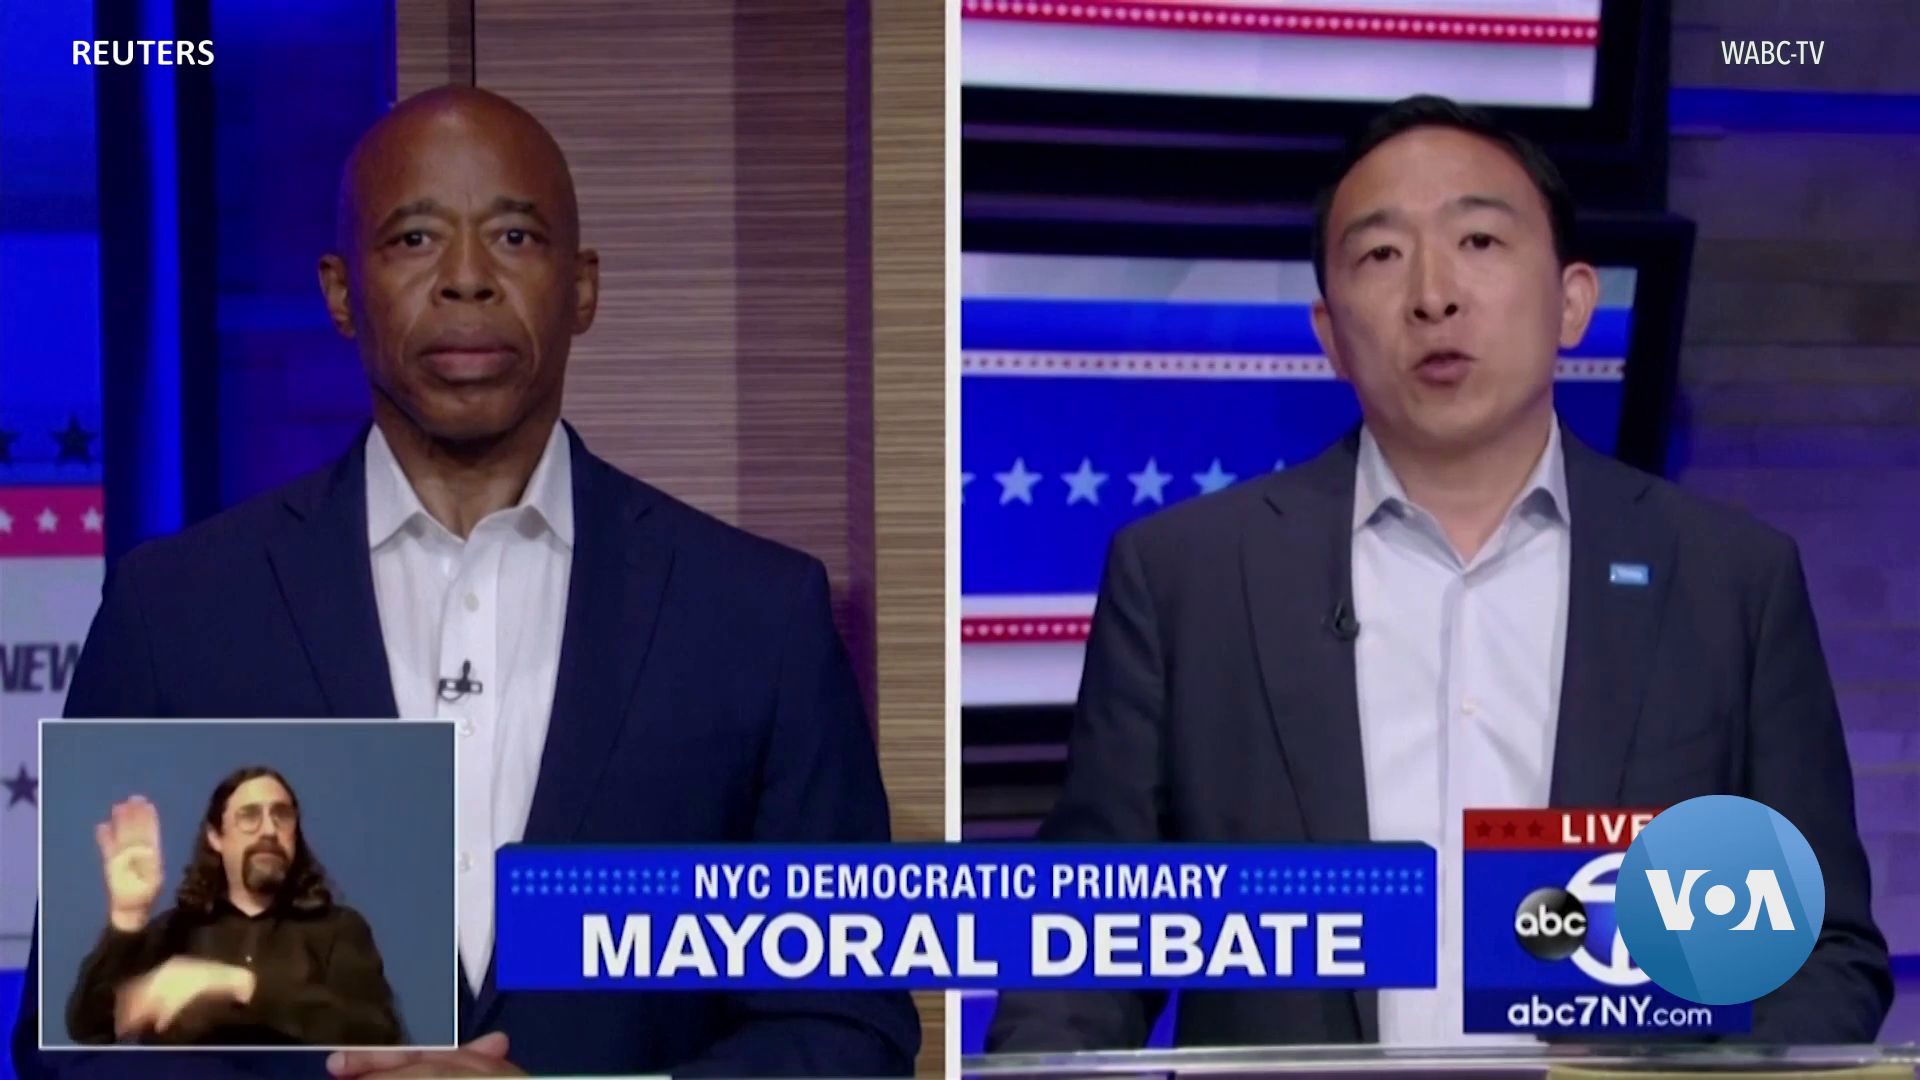 New Yorkers to Cast Votes in Mayoral Primary